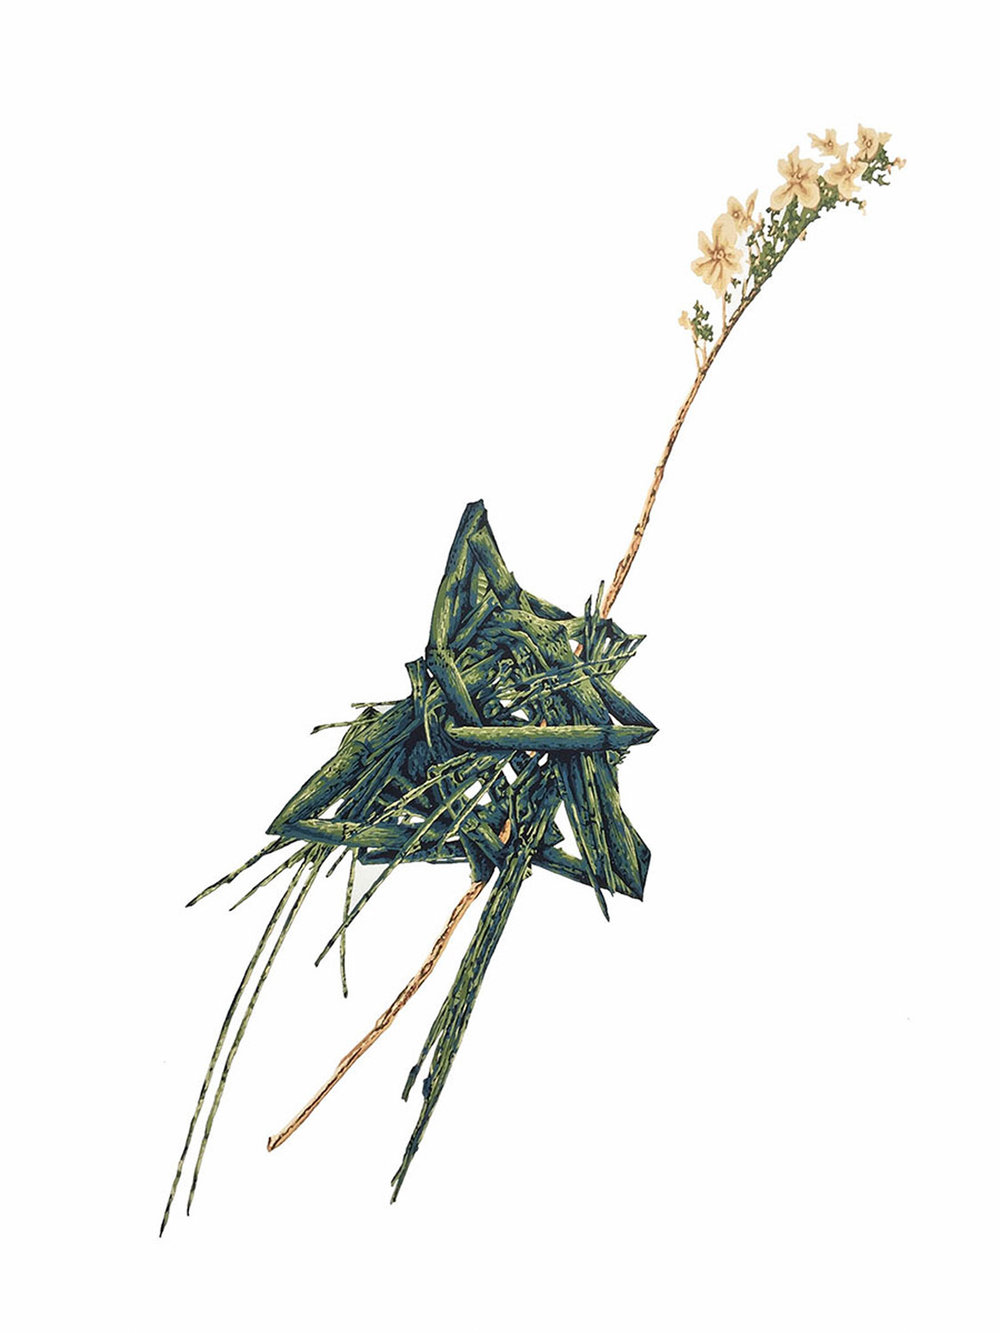 Heidi Almosara   Horsetail Knot with Flower Sliver  17-color Reduction Screen Print on Awagami Bamboo Select 20 x 14 inches, APS 200G